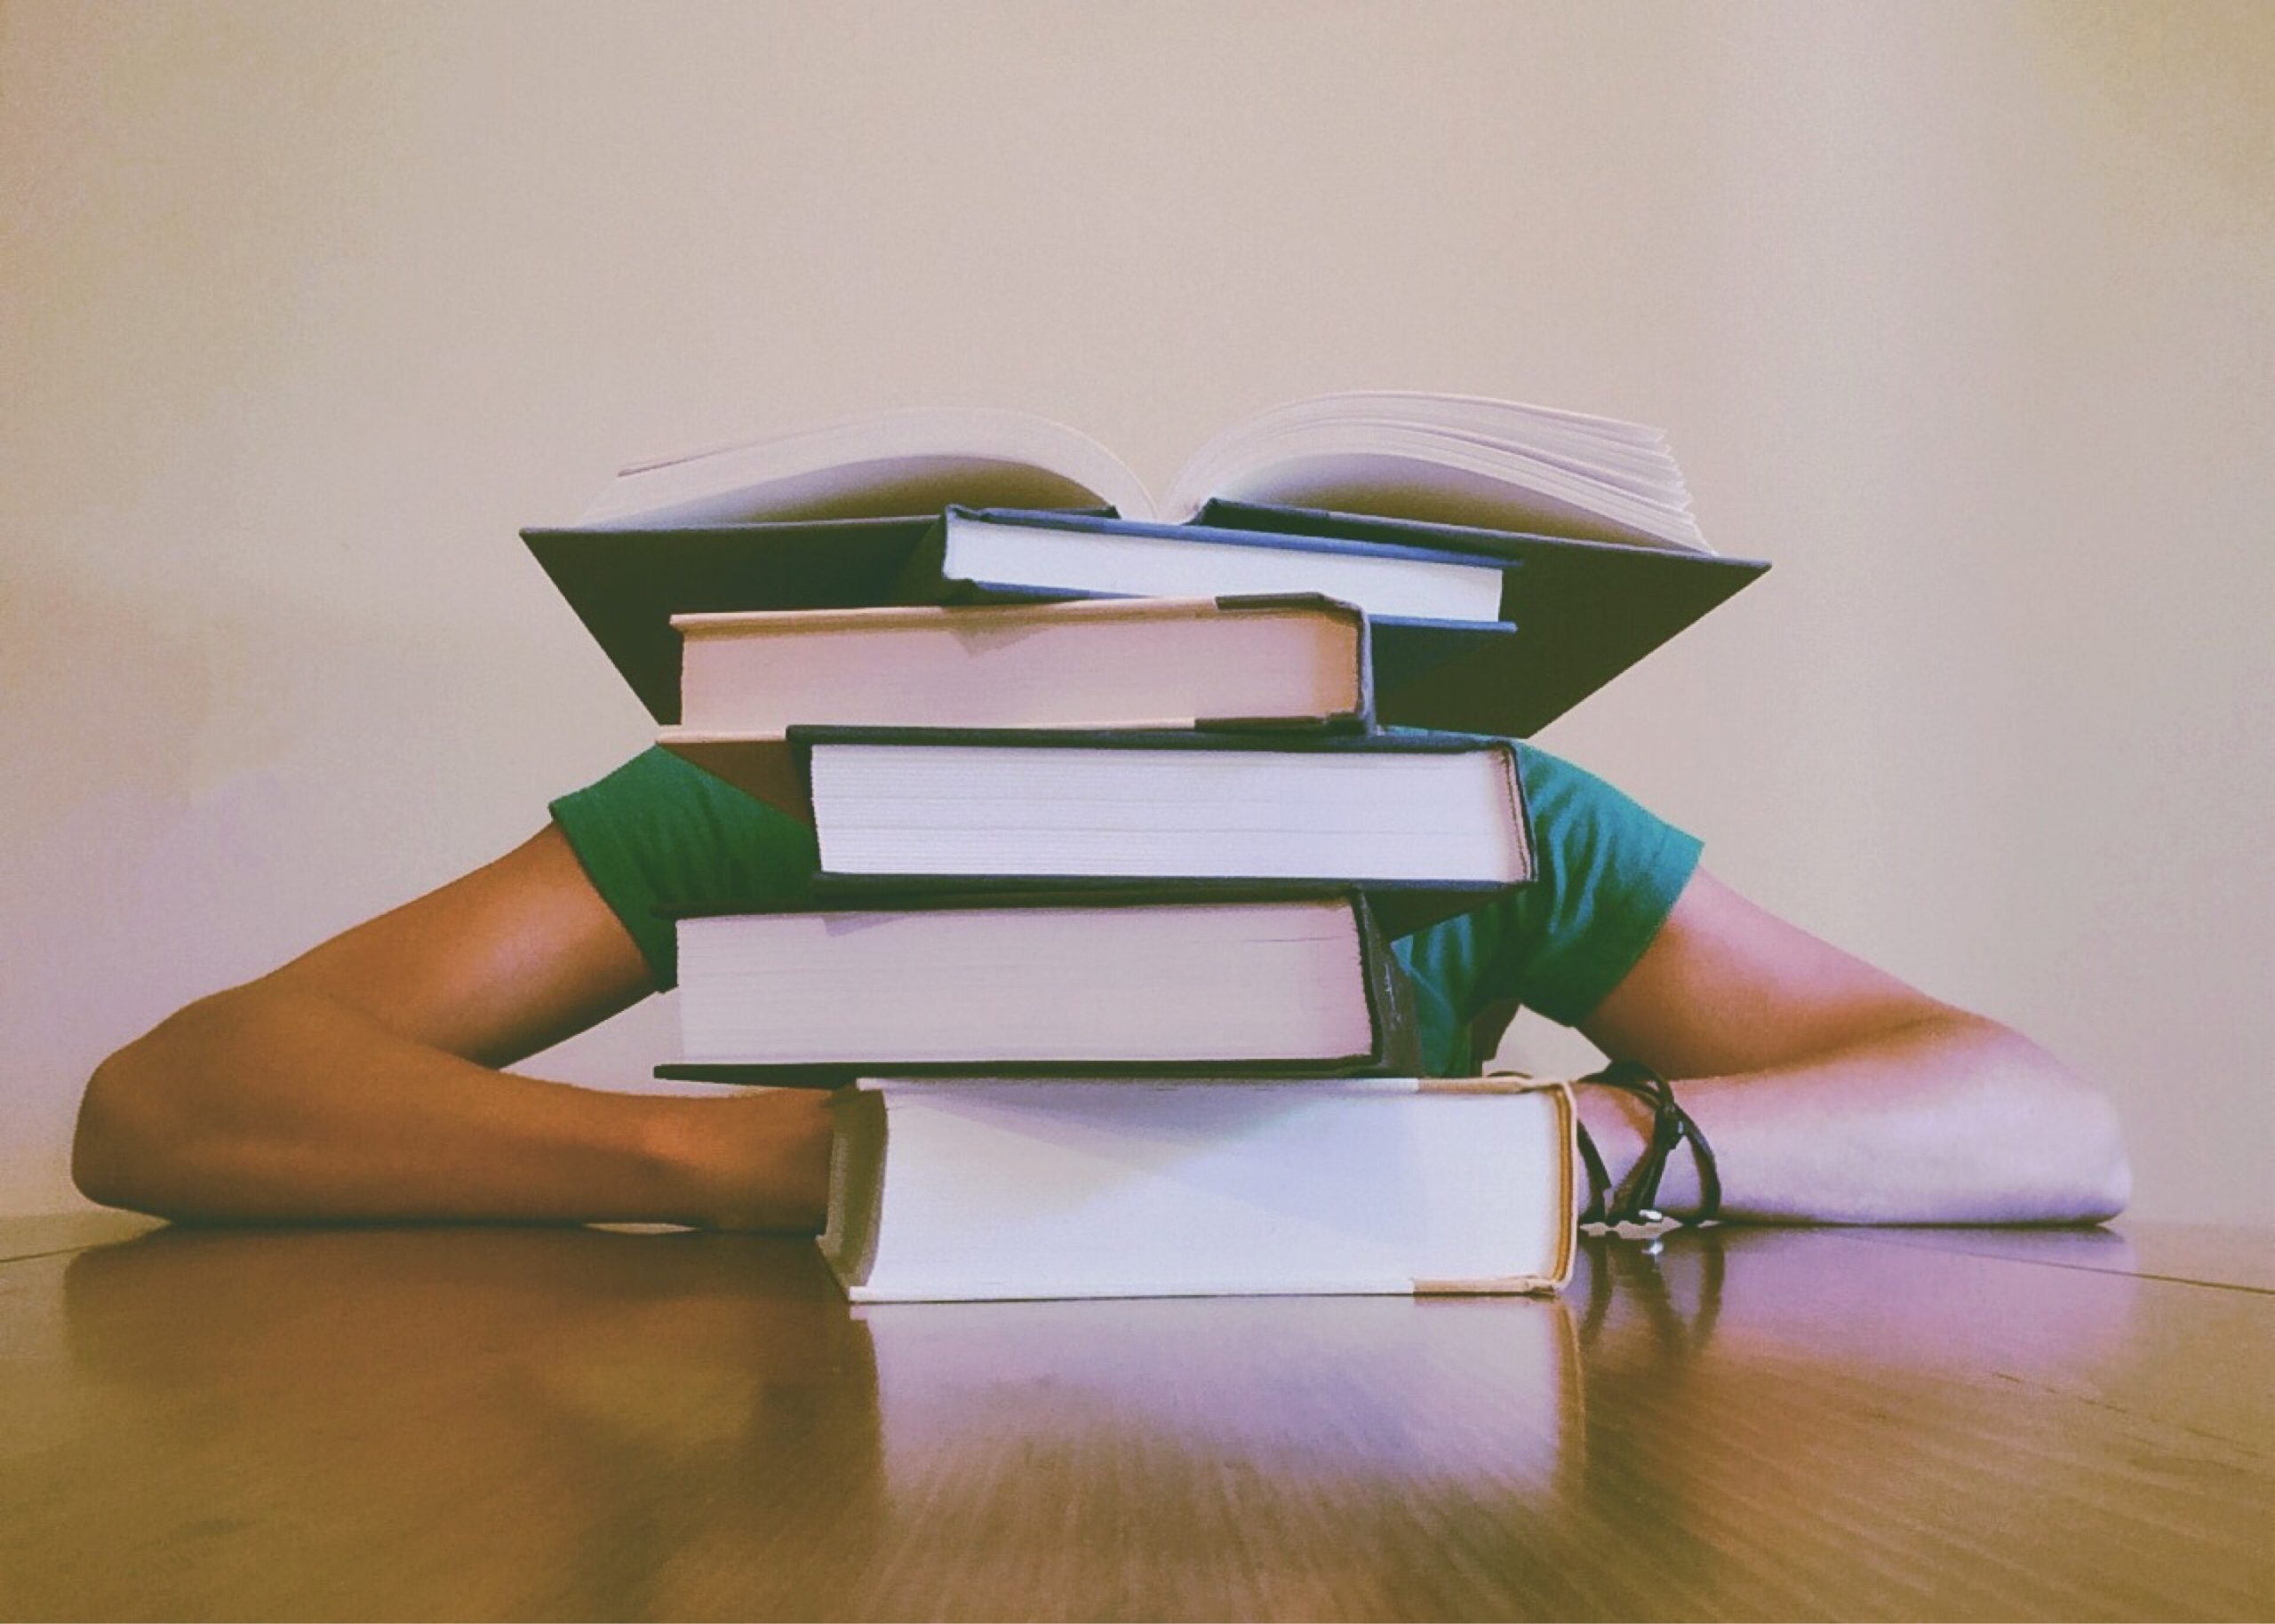 Making up for lost time – how students can catch up missed school time